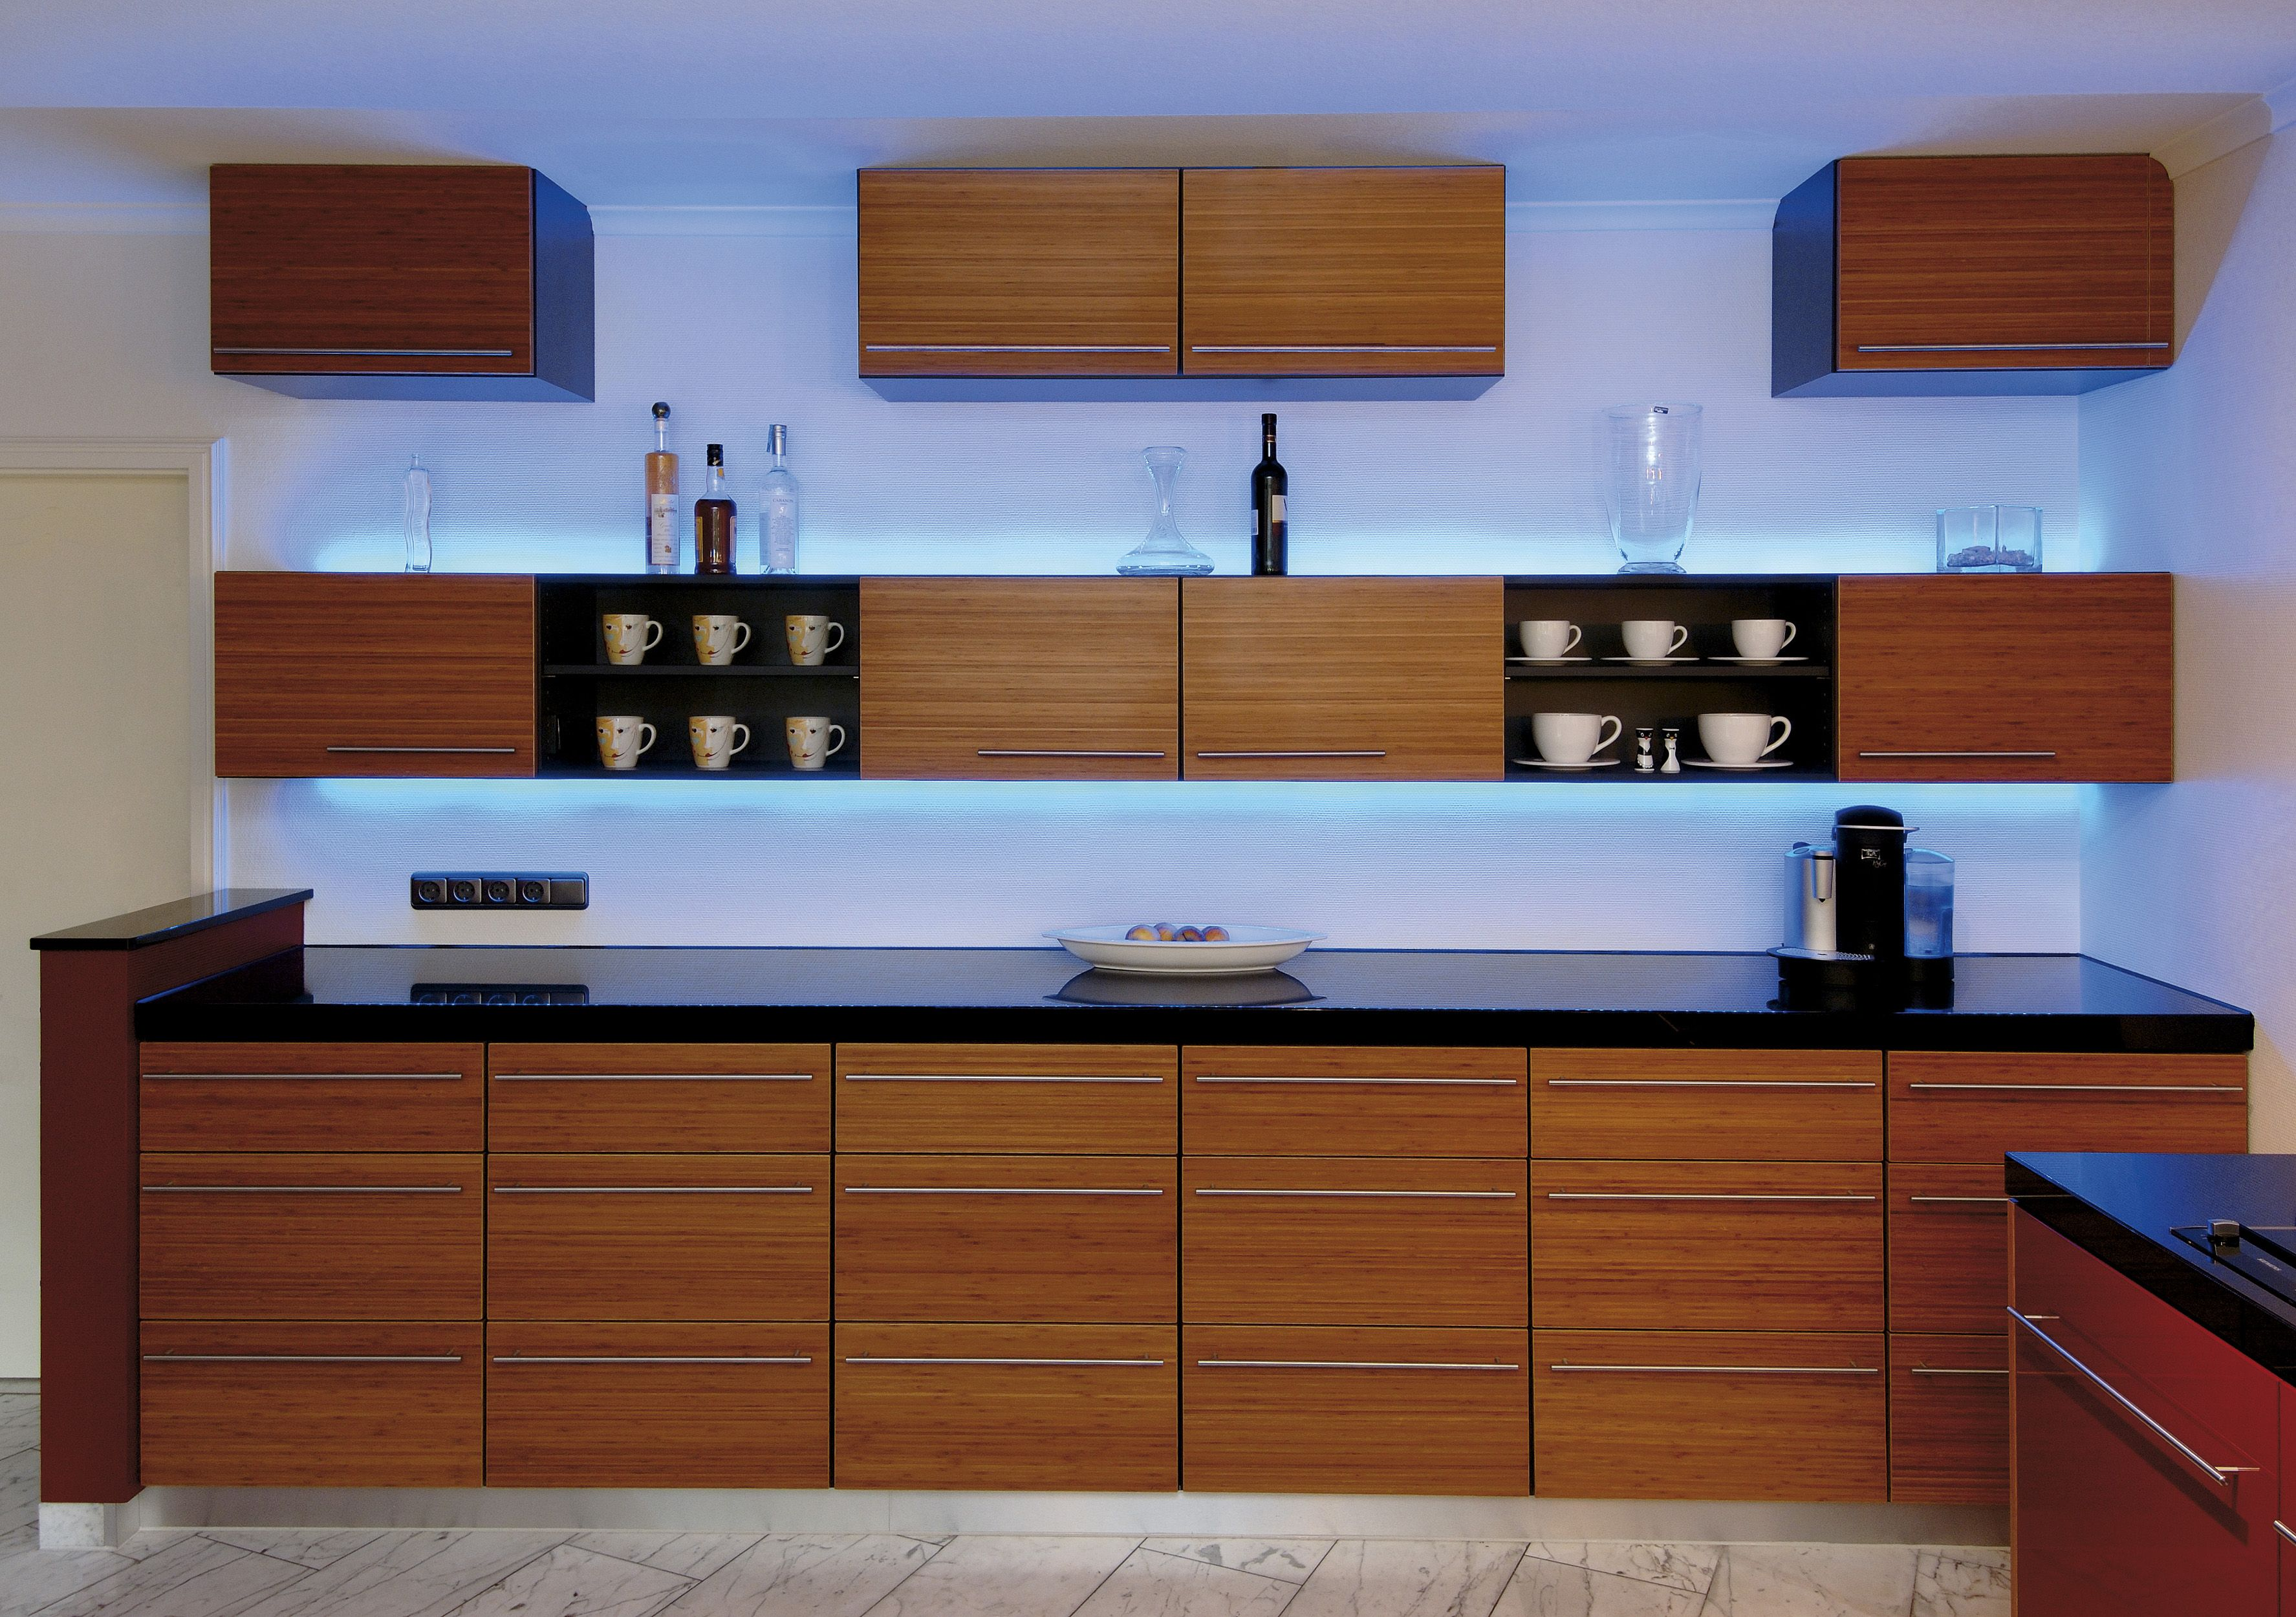 1000+ images about Lighting Ideas on Pinterest | Modern kitchen lighting,  Cabinets and Glass doors